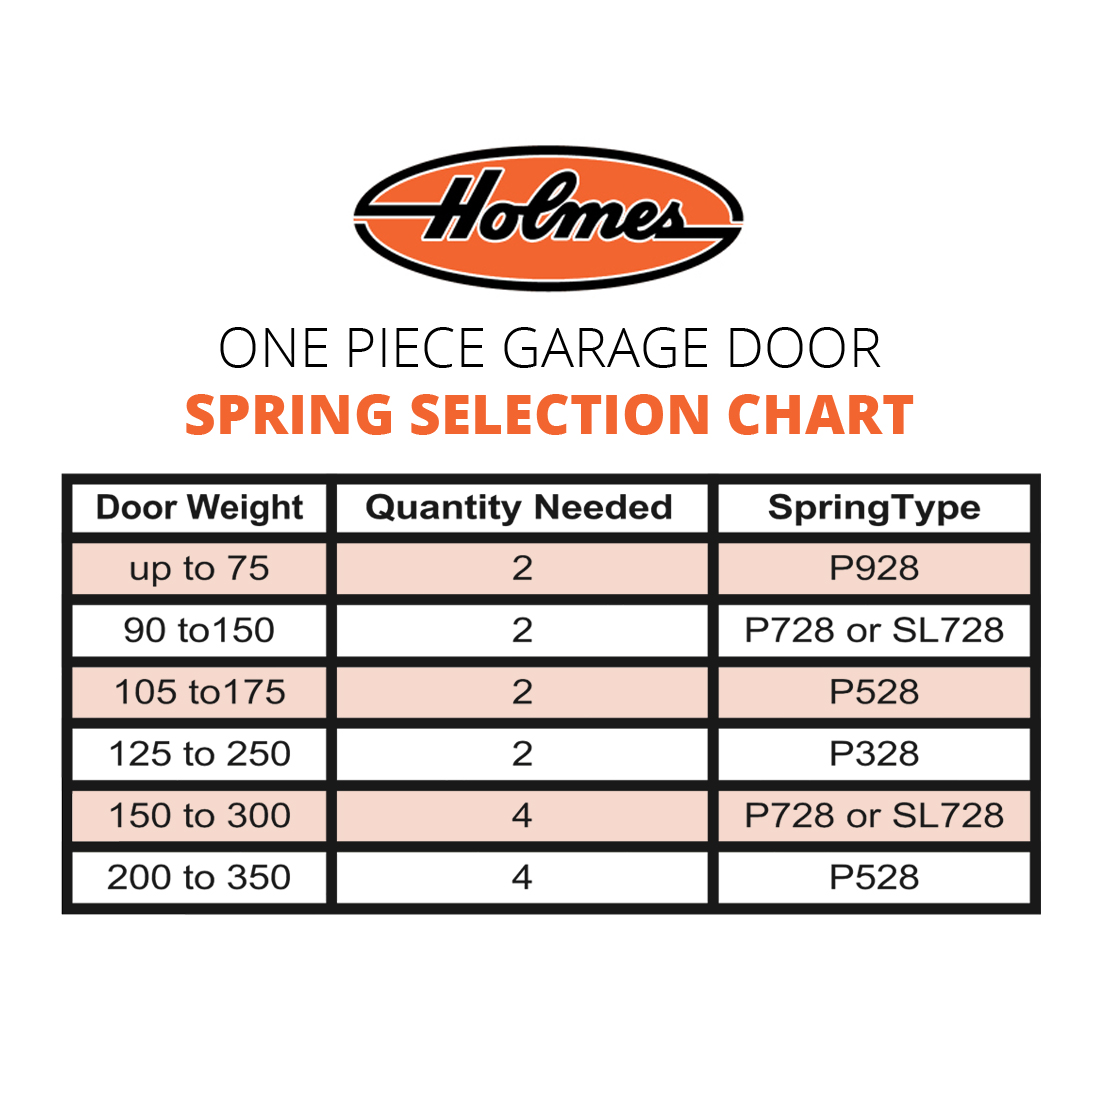 Holmes Garage Door Spring Chart Ppi Blog